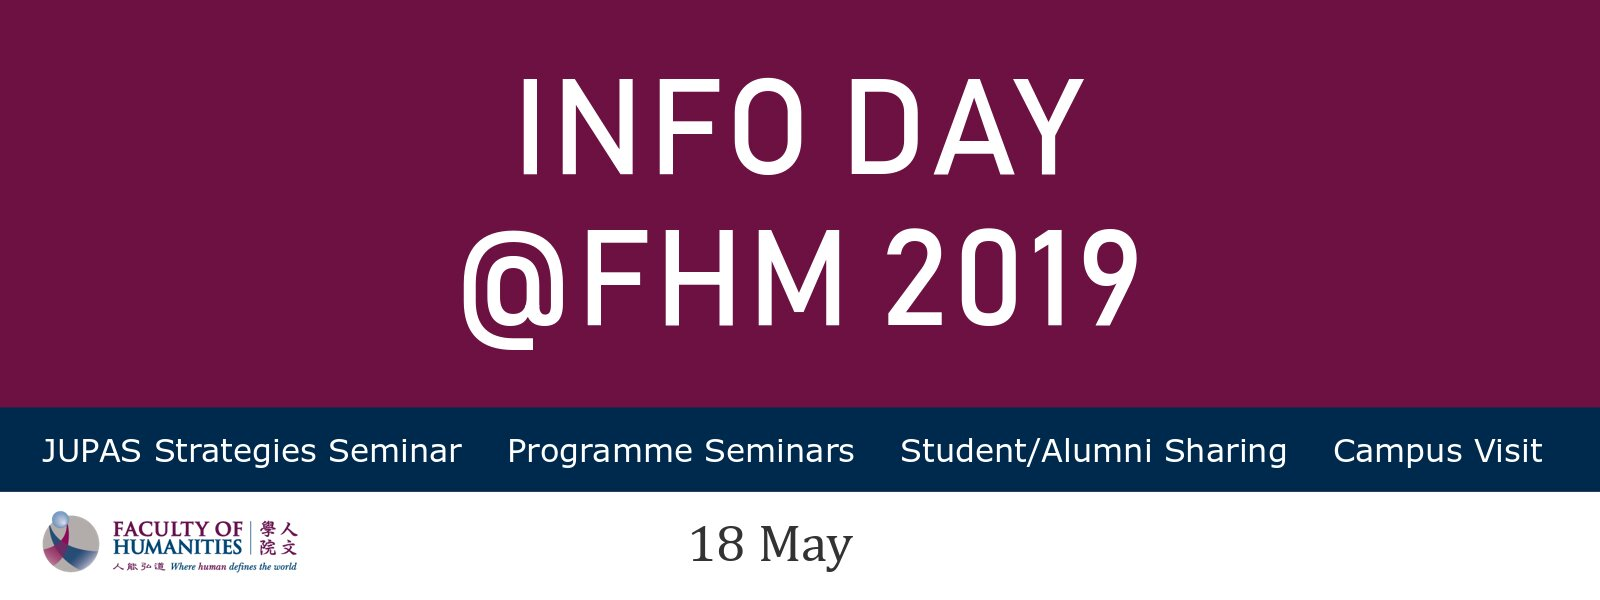 Information Day @ FHM 2019